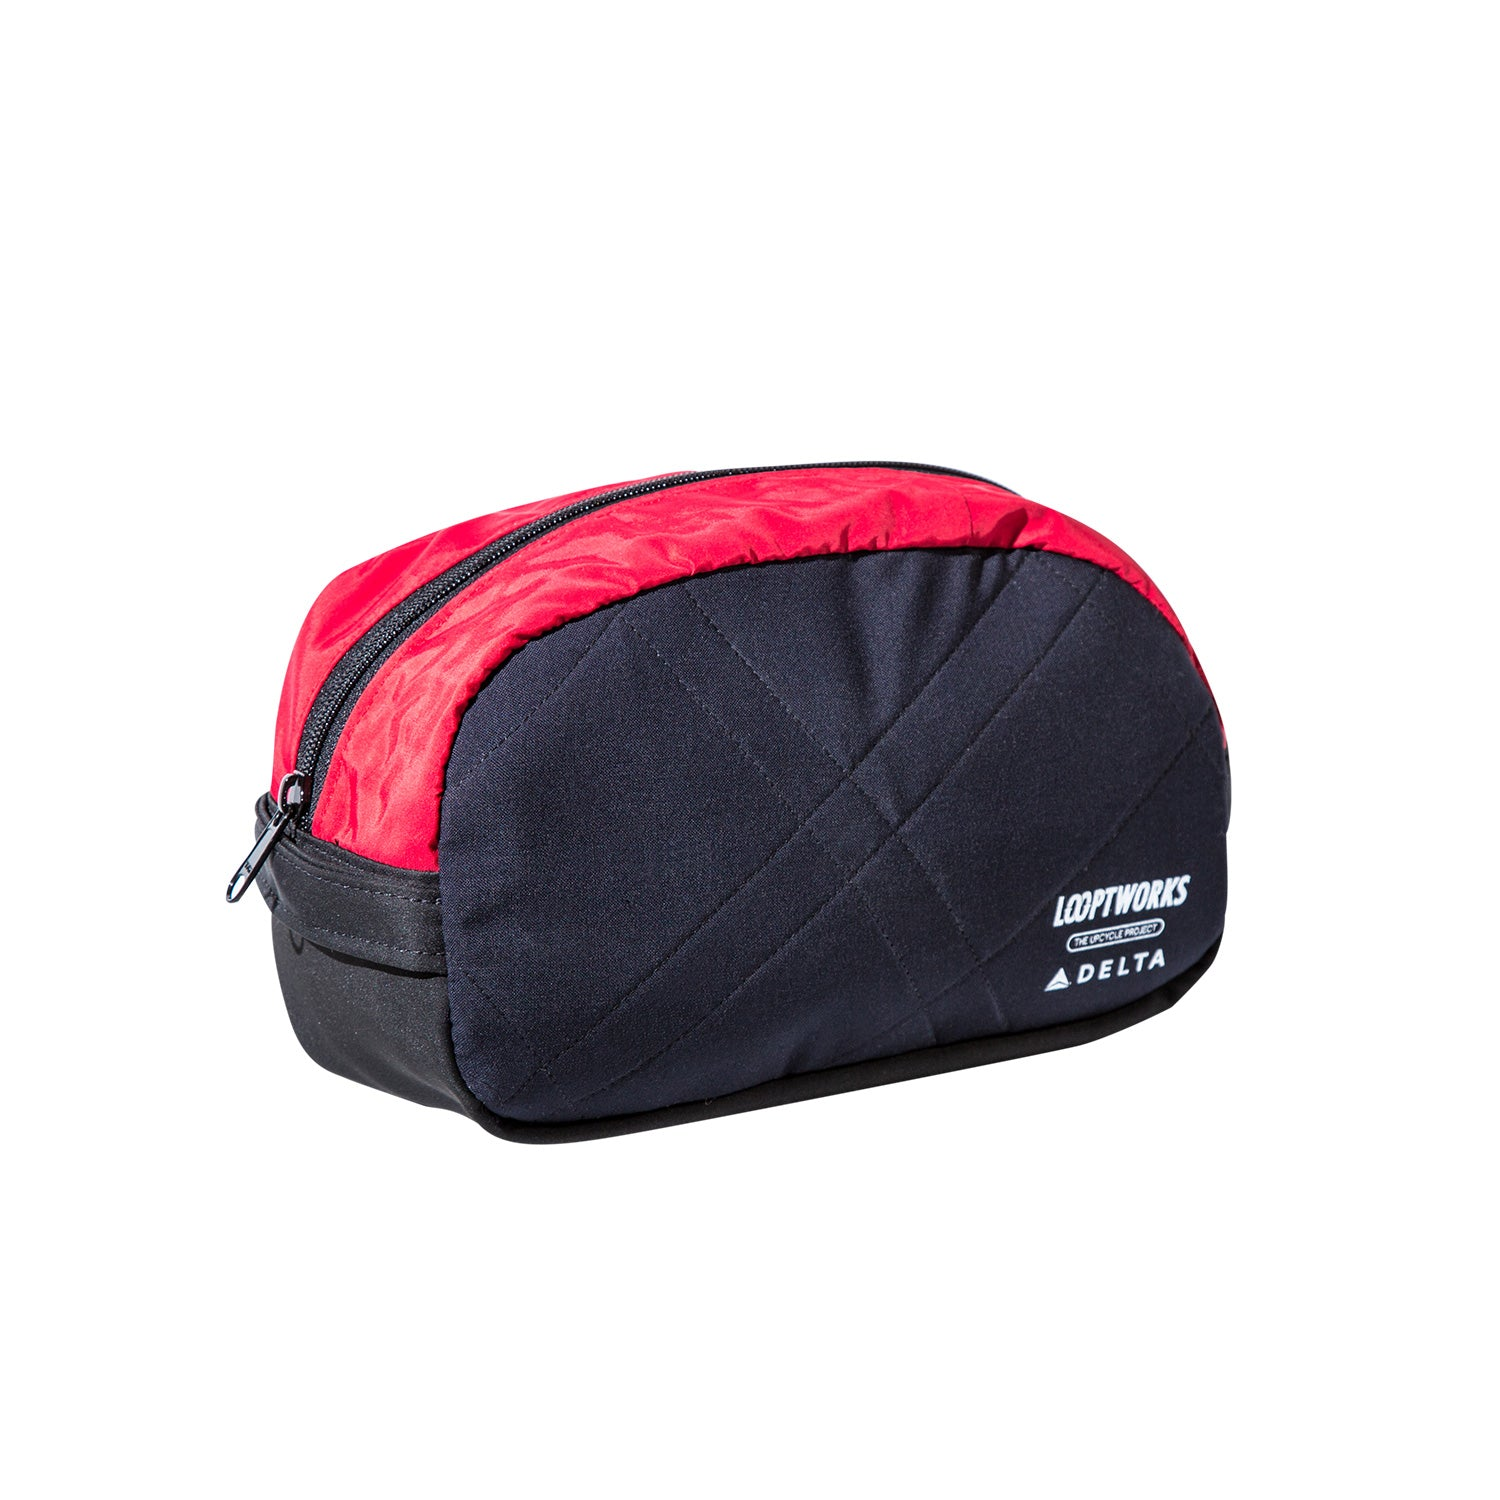 Delta Family Toiletry Bag Accessories - Looptworks